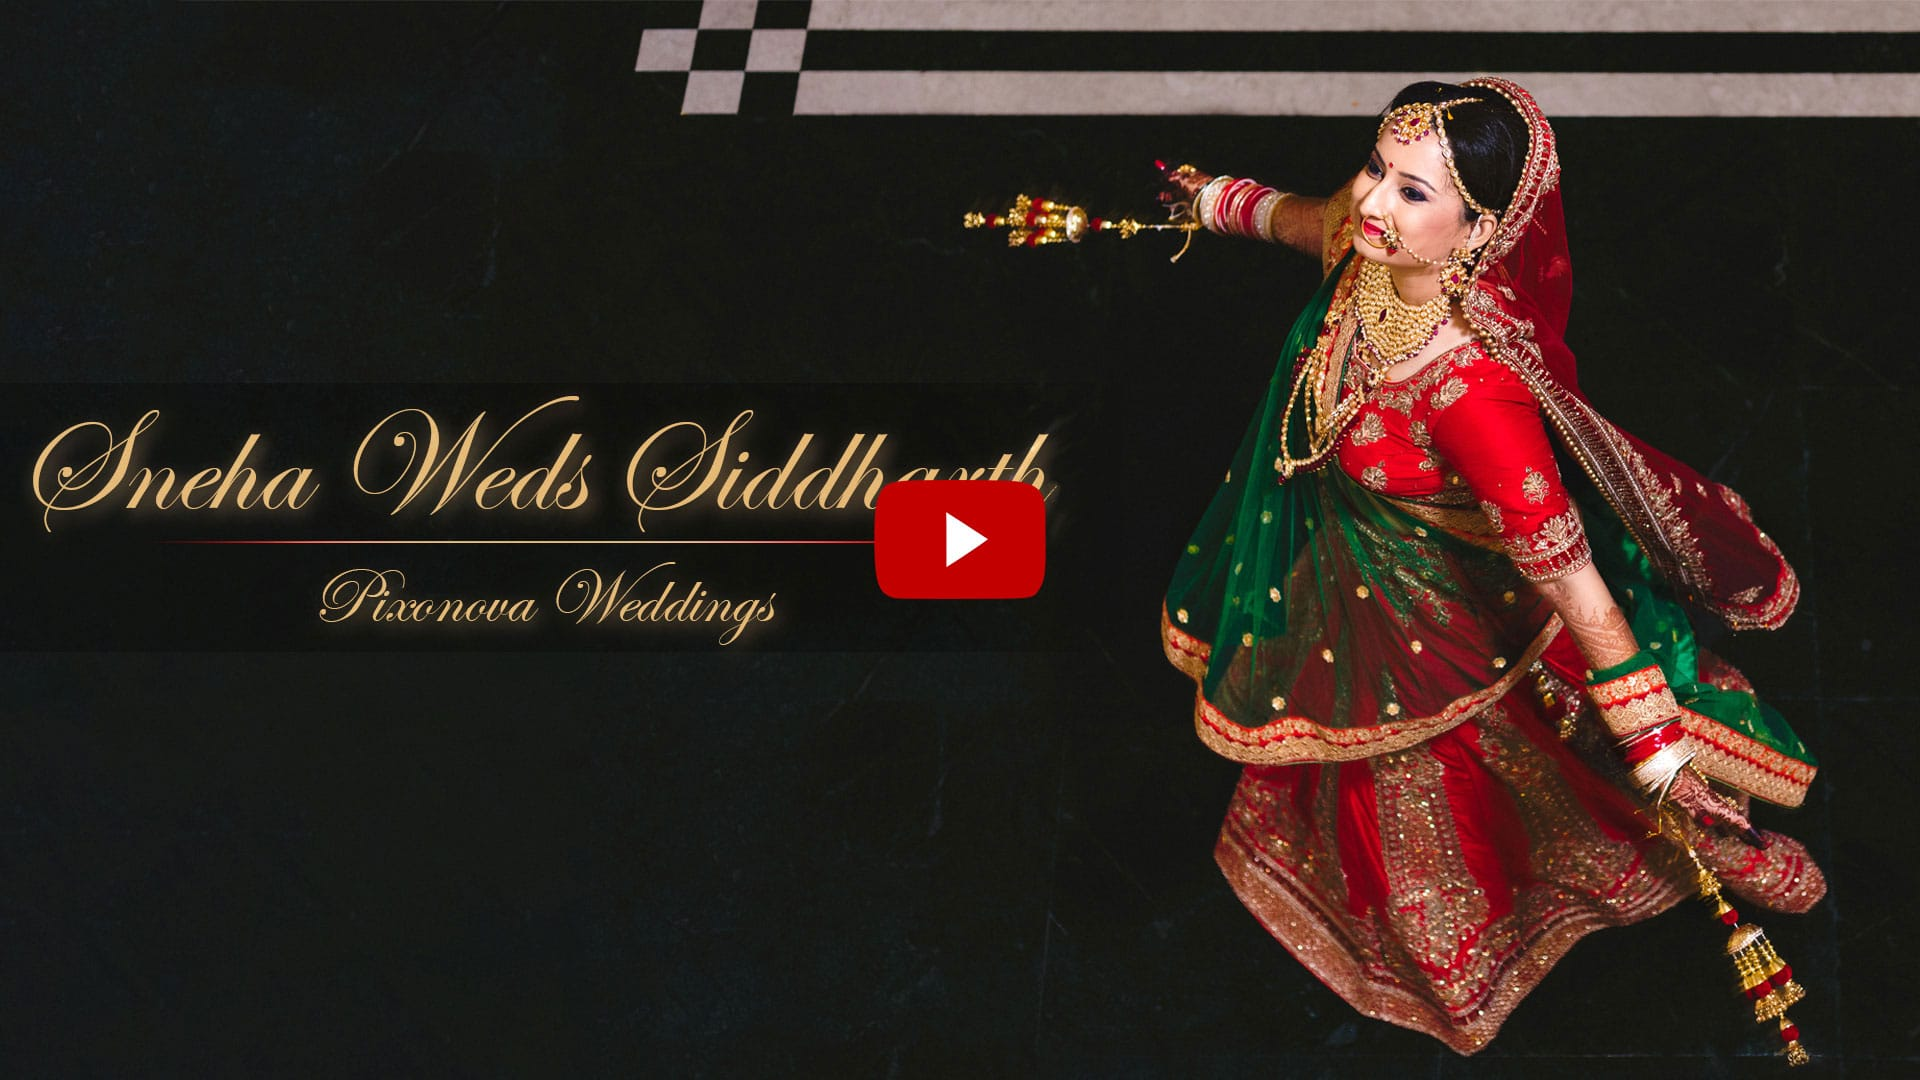 Cinematic wedding video of Sneha and Siddharth